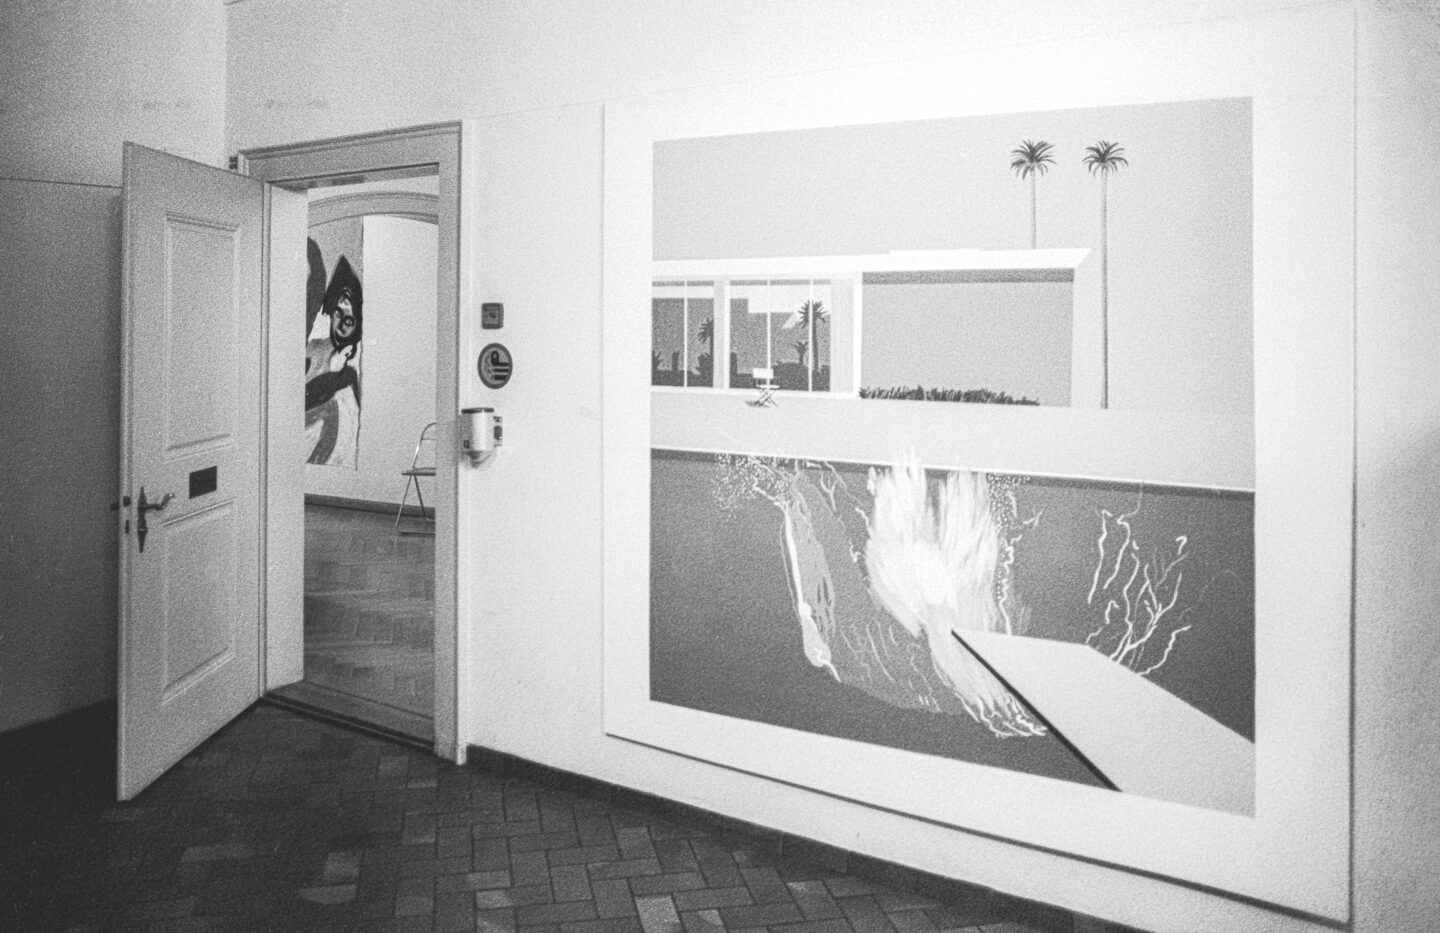 Exhibition View Groupshow «Ausbruch & Rausch, Zurich 1975-1980, Women Art Punk; view on Sergio Gallis «A Bigger Splash» after David Hockney at the entrance of the exhibition / Photo: Dieter Hall, 1980» at Strauhof, Zurich, 2020